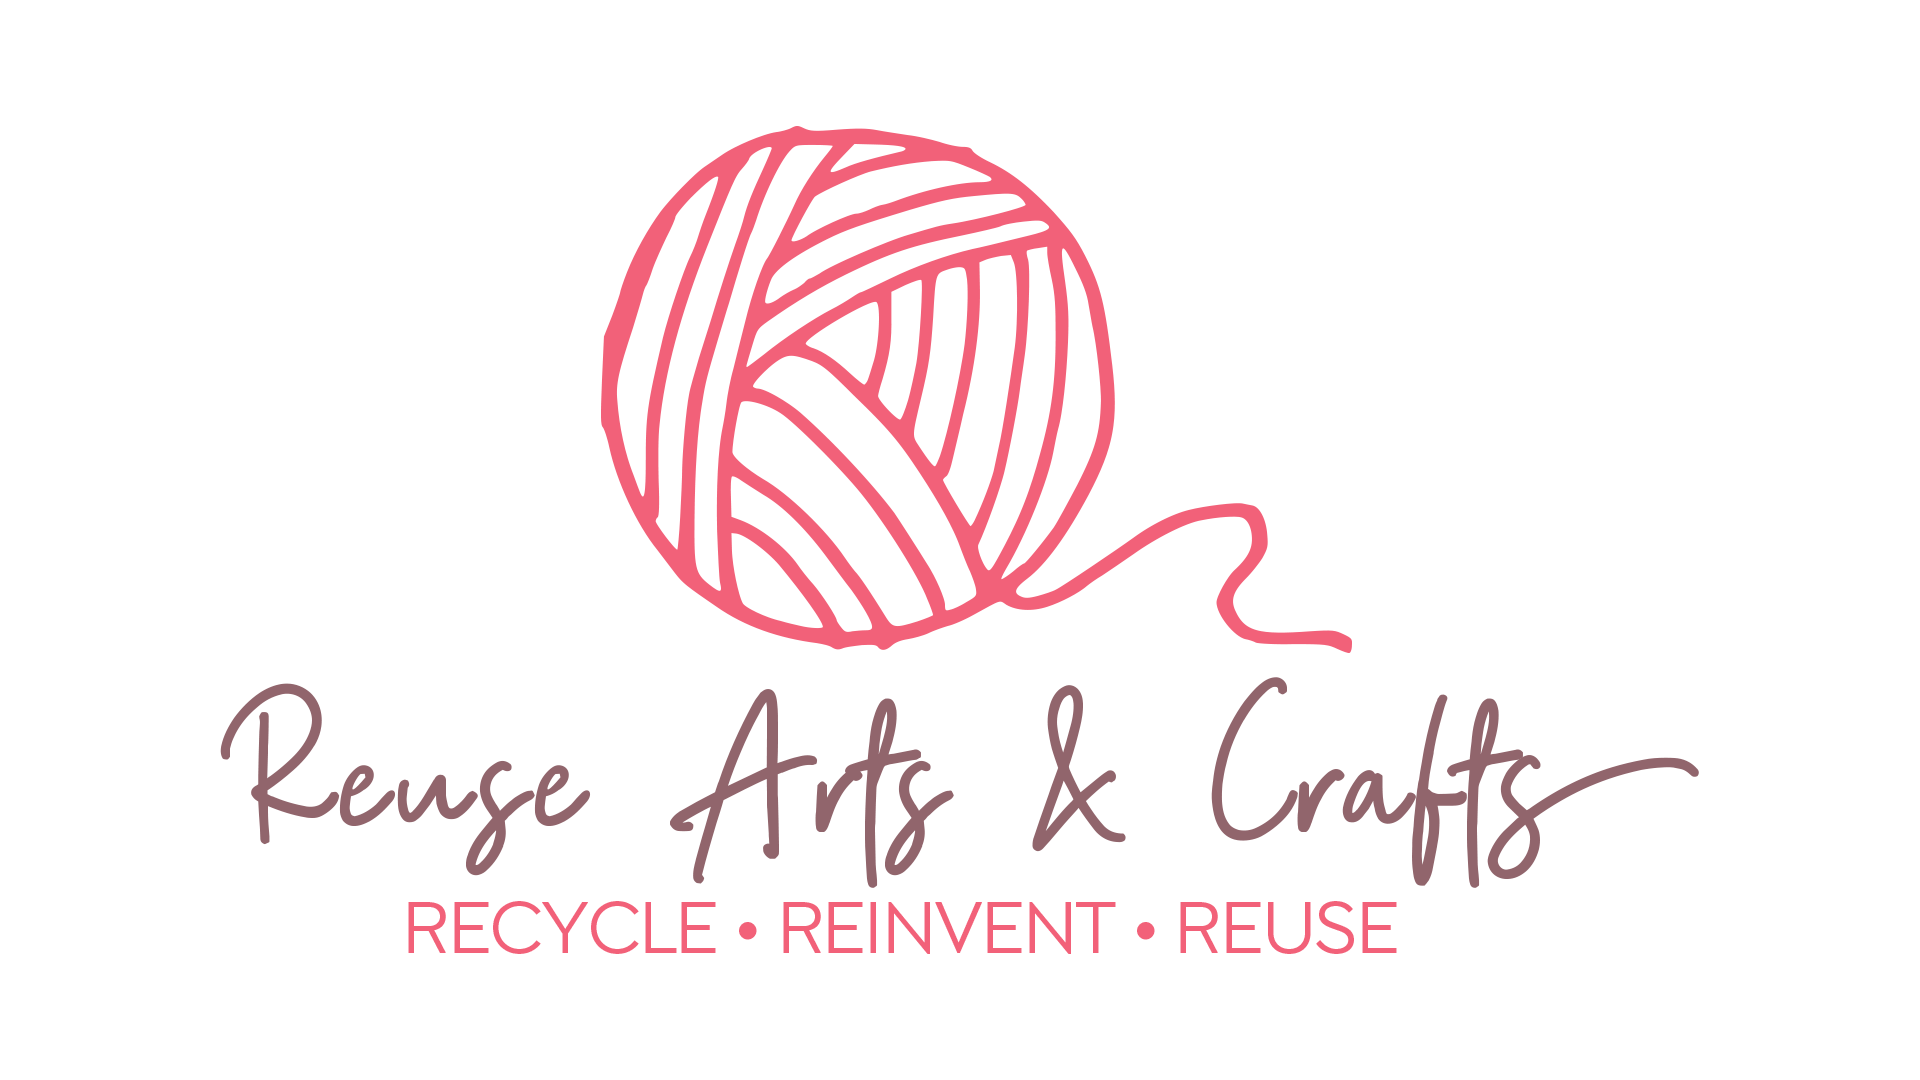 Reuse for Arts and Crafts